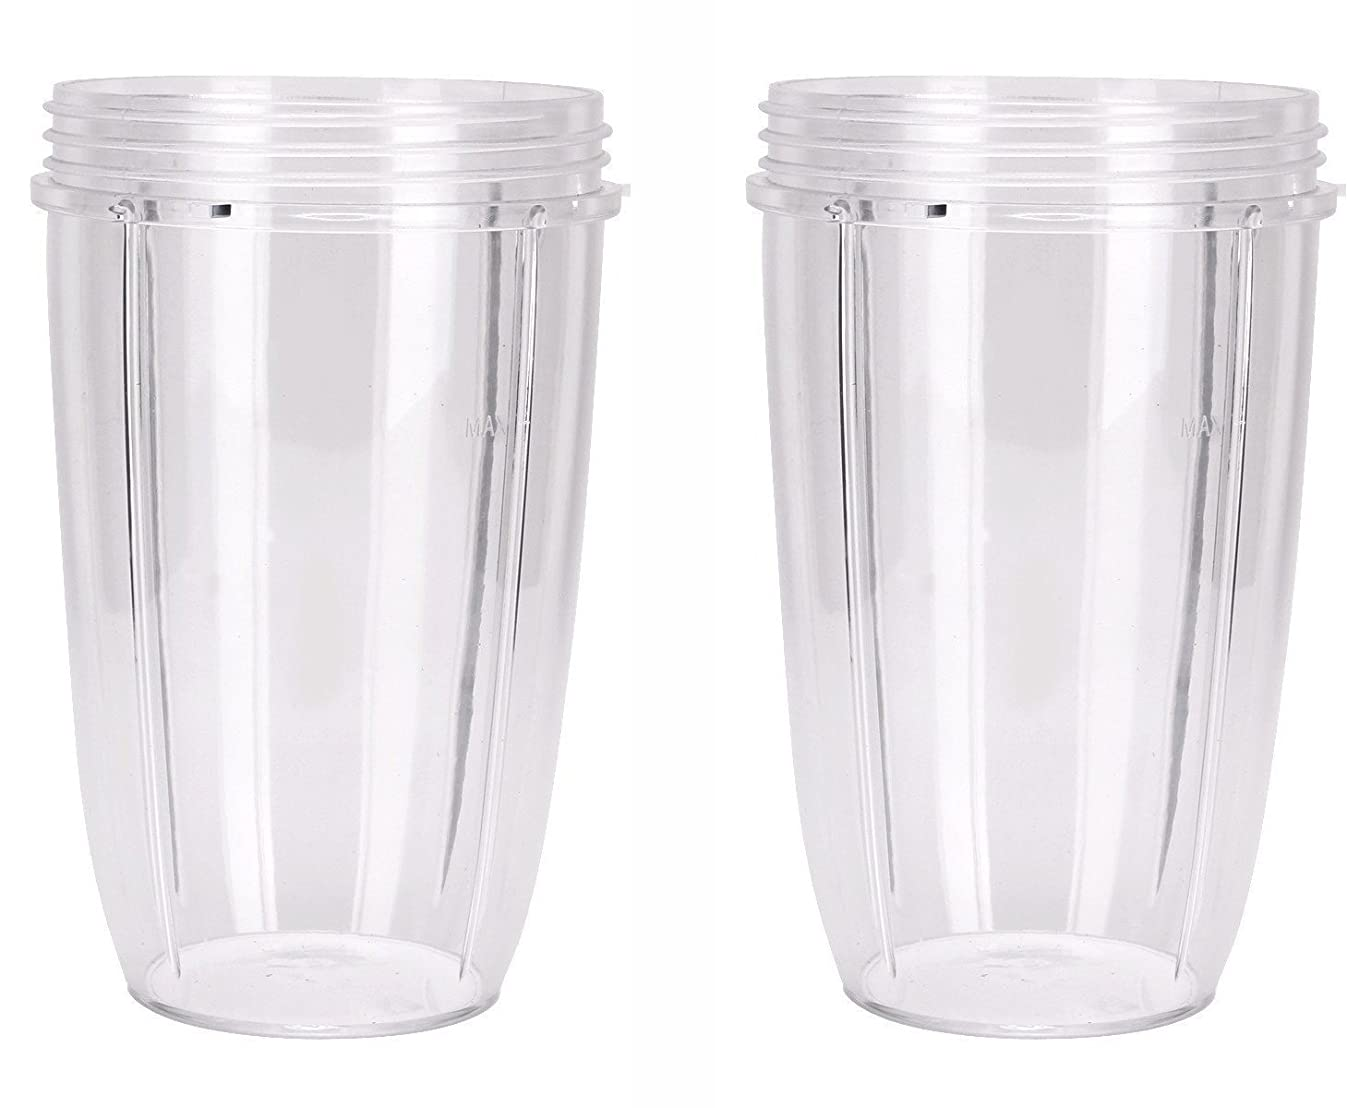 Preferred Parts NutriBullet Replacement Cups (Tall - 24-Once) | Premium NutriBullet Replacement Parts and Accessories (Pack of 2)